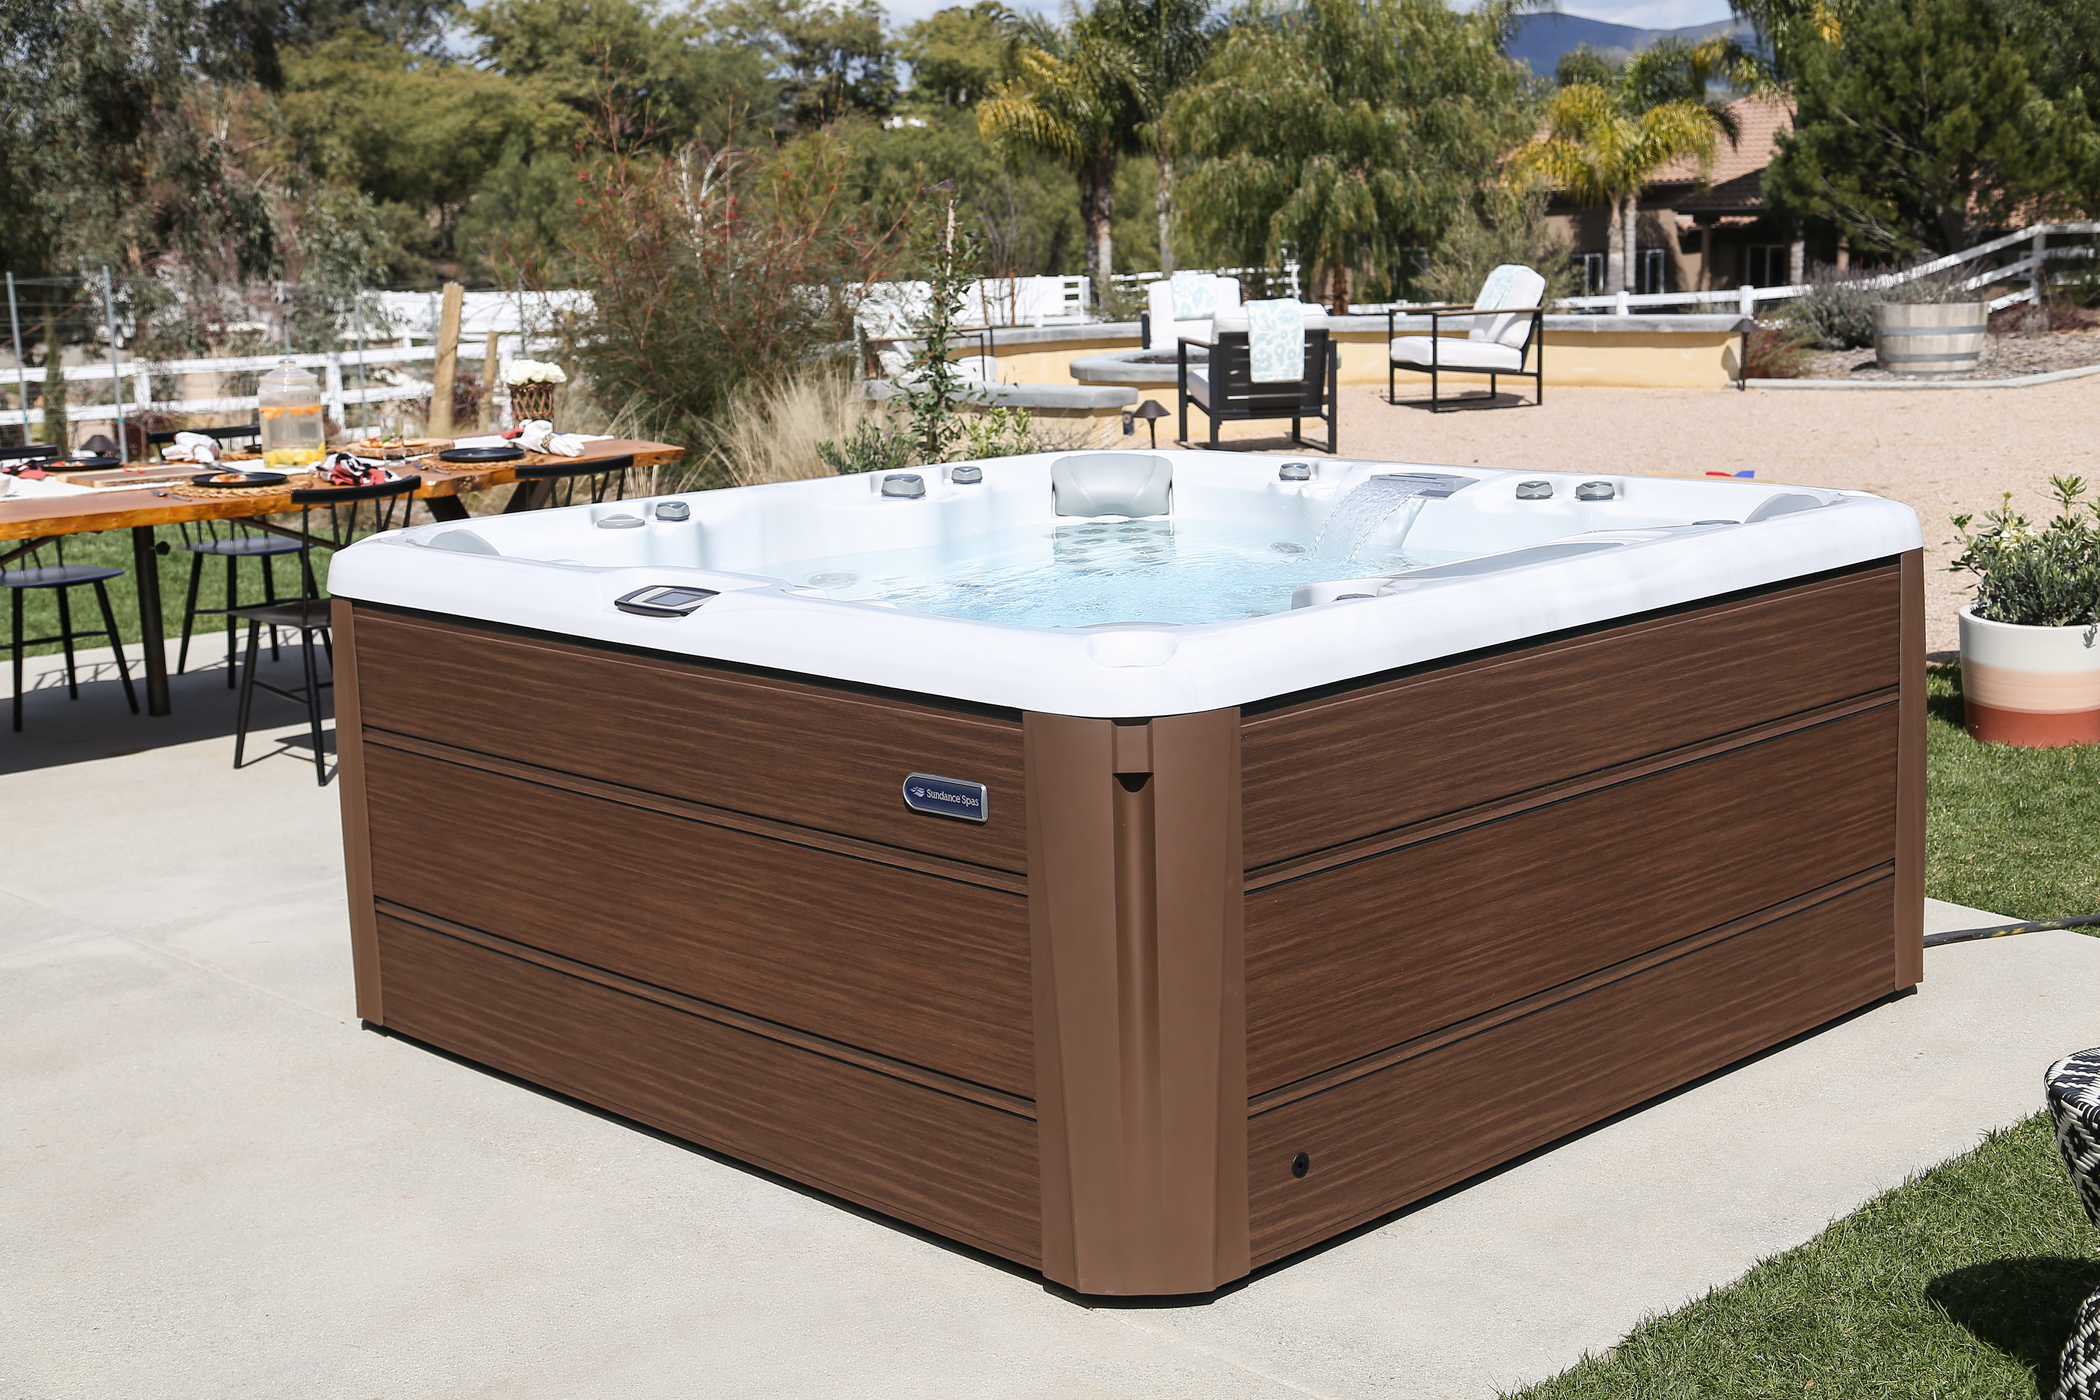 What Foundation Is Best For My Hot Tub